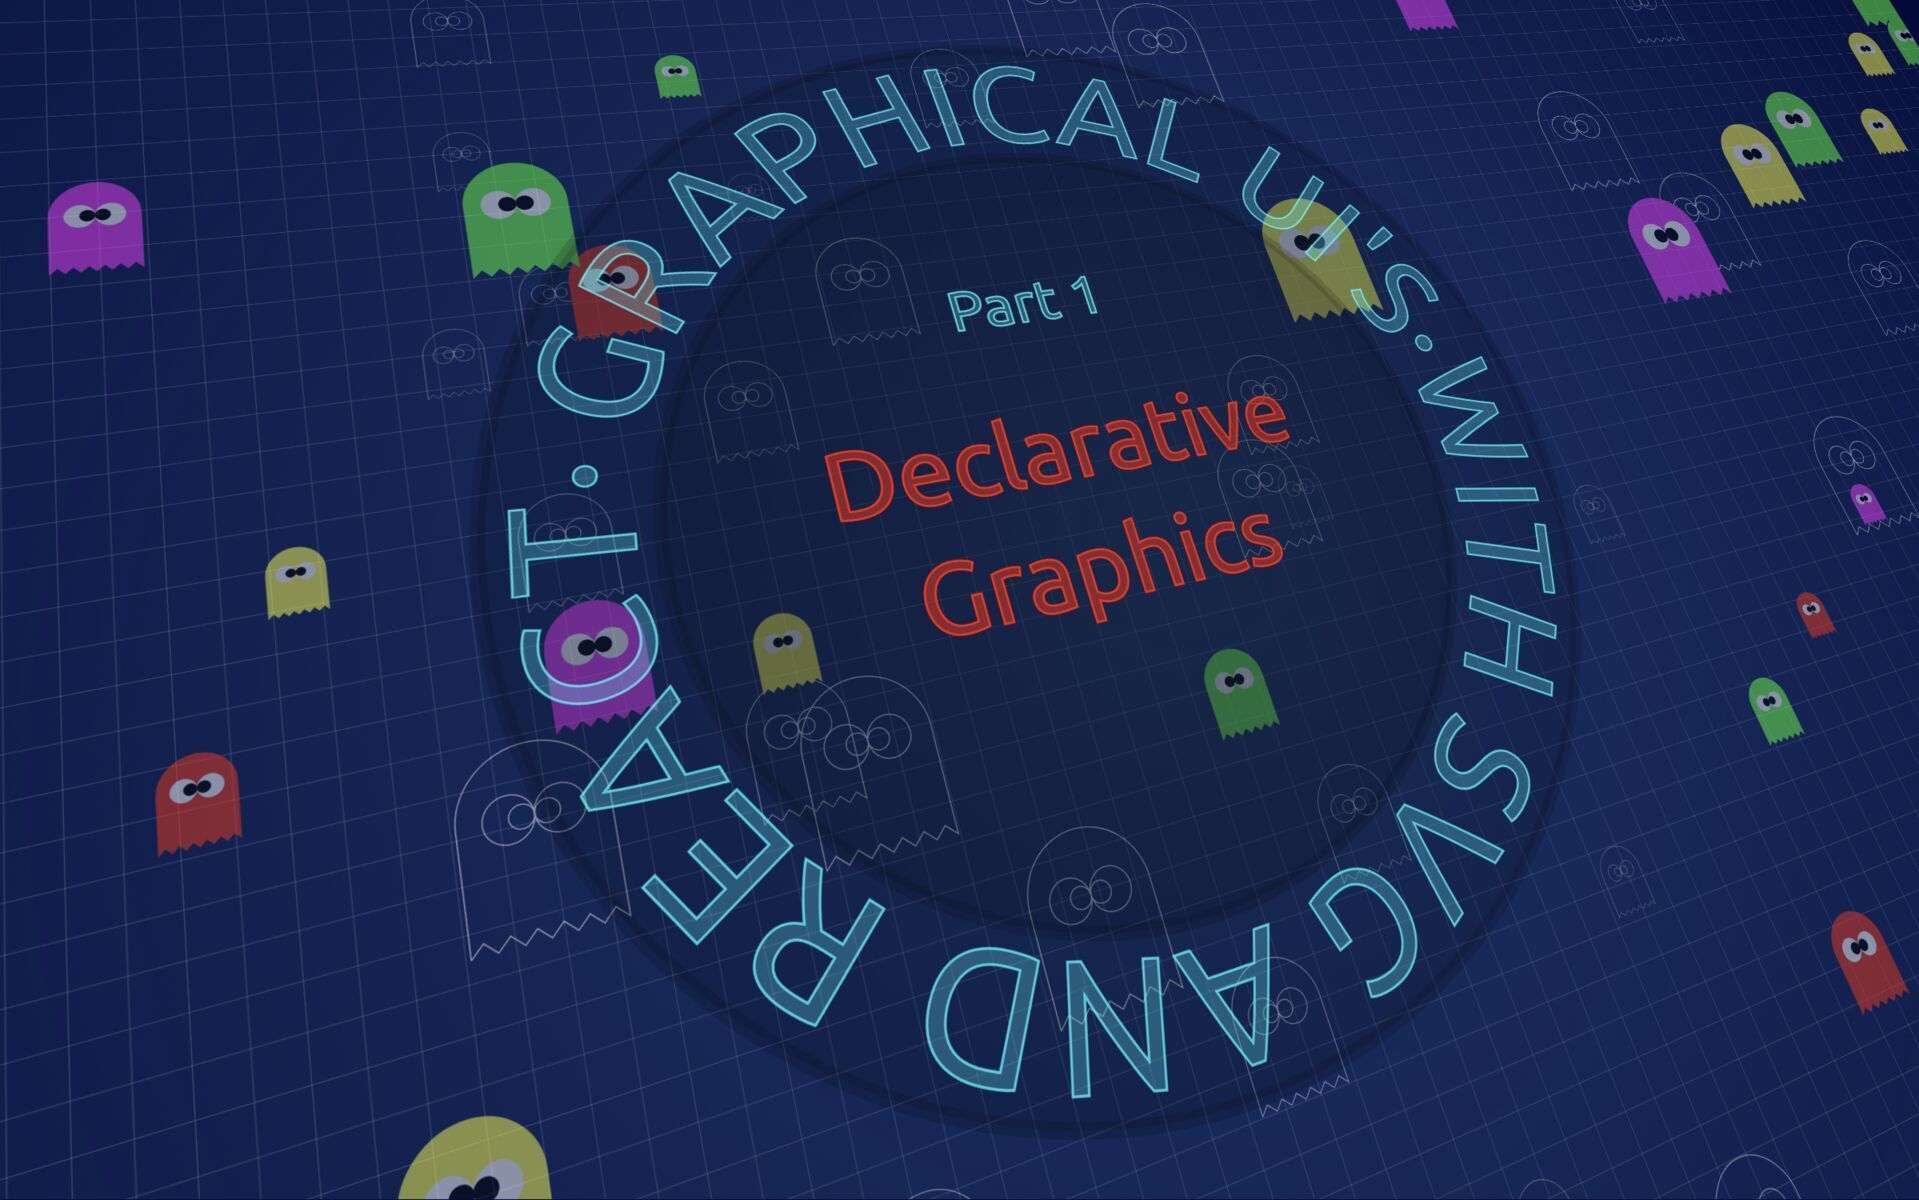 Graphical UI's with SVG and React,  part 1 - Declarative Graphics